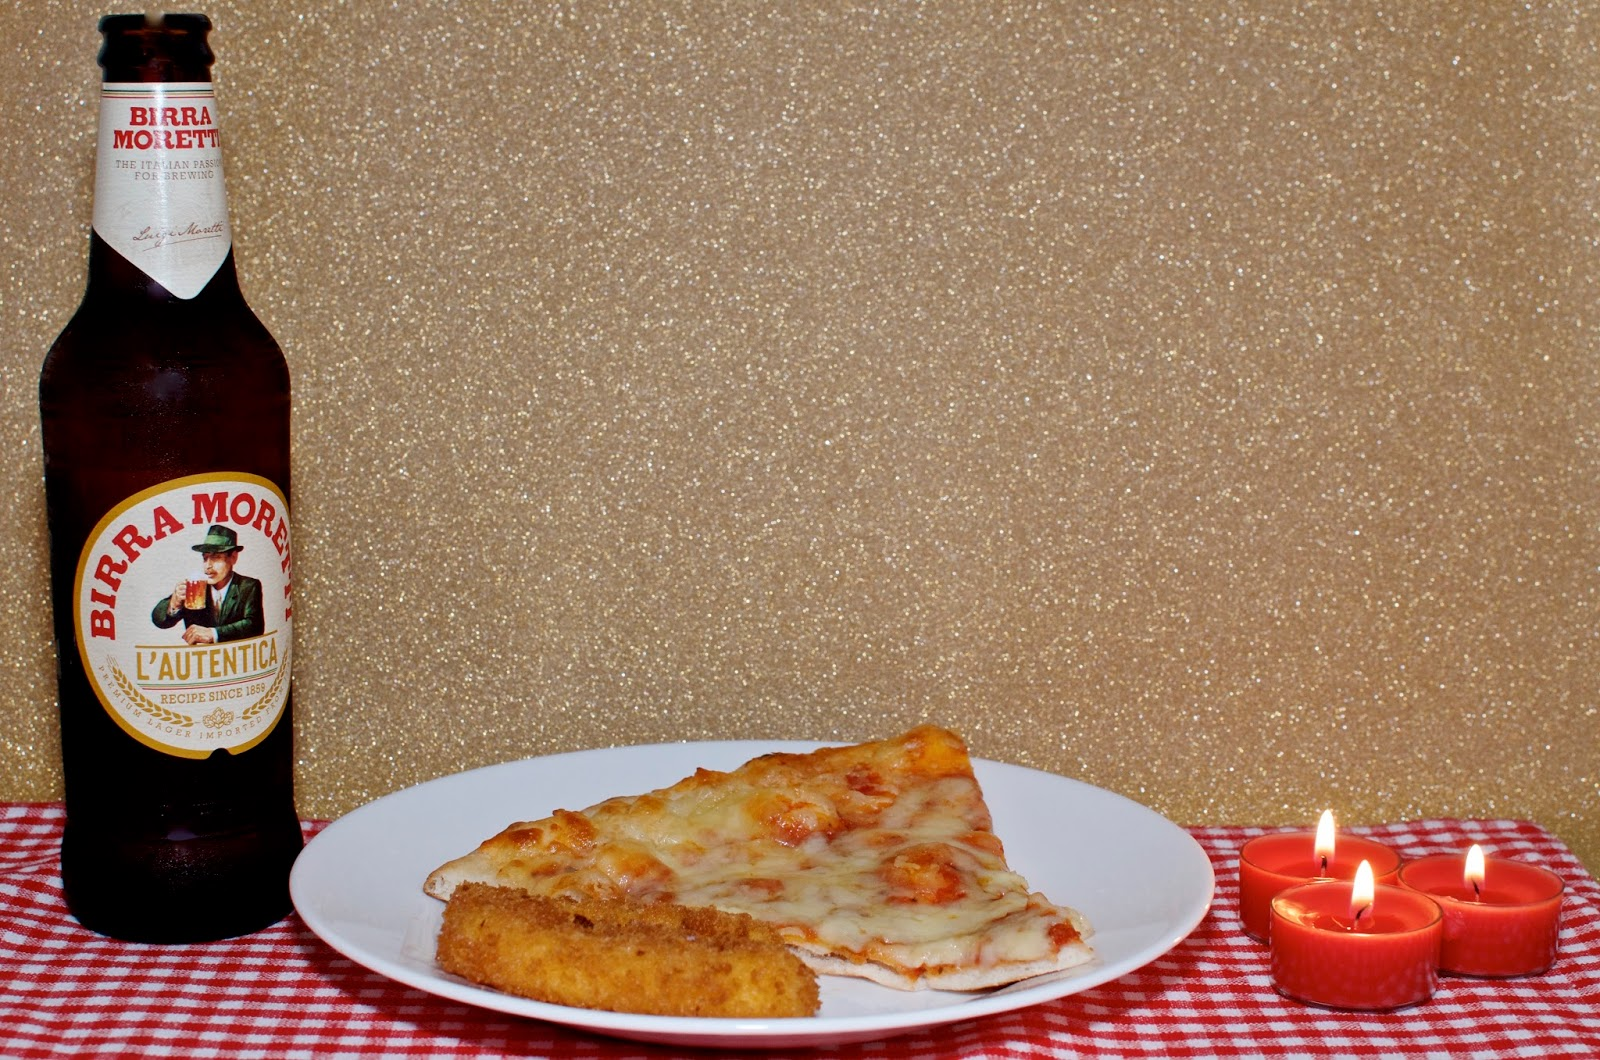 Beer, pizza and candles